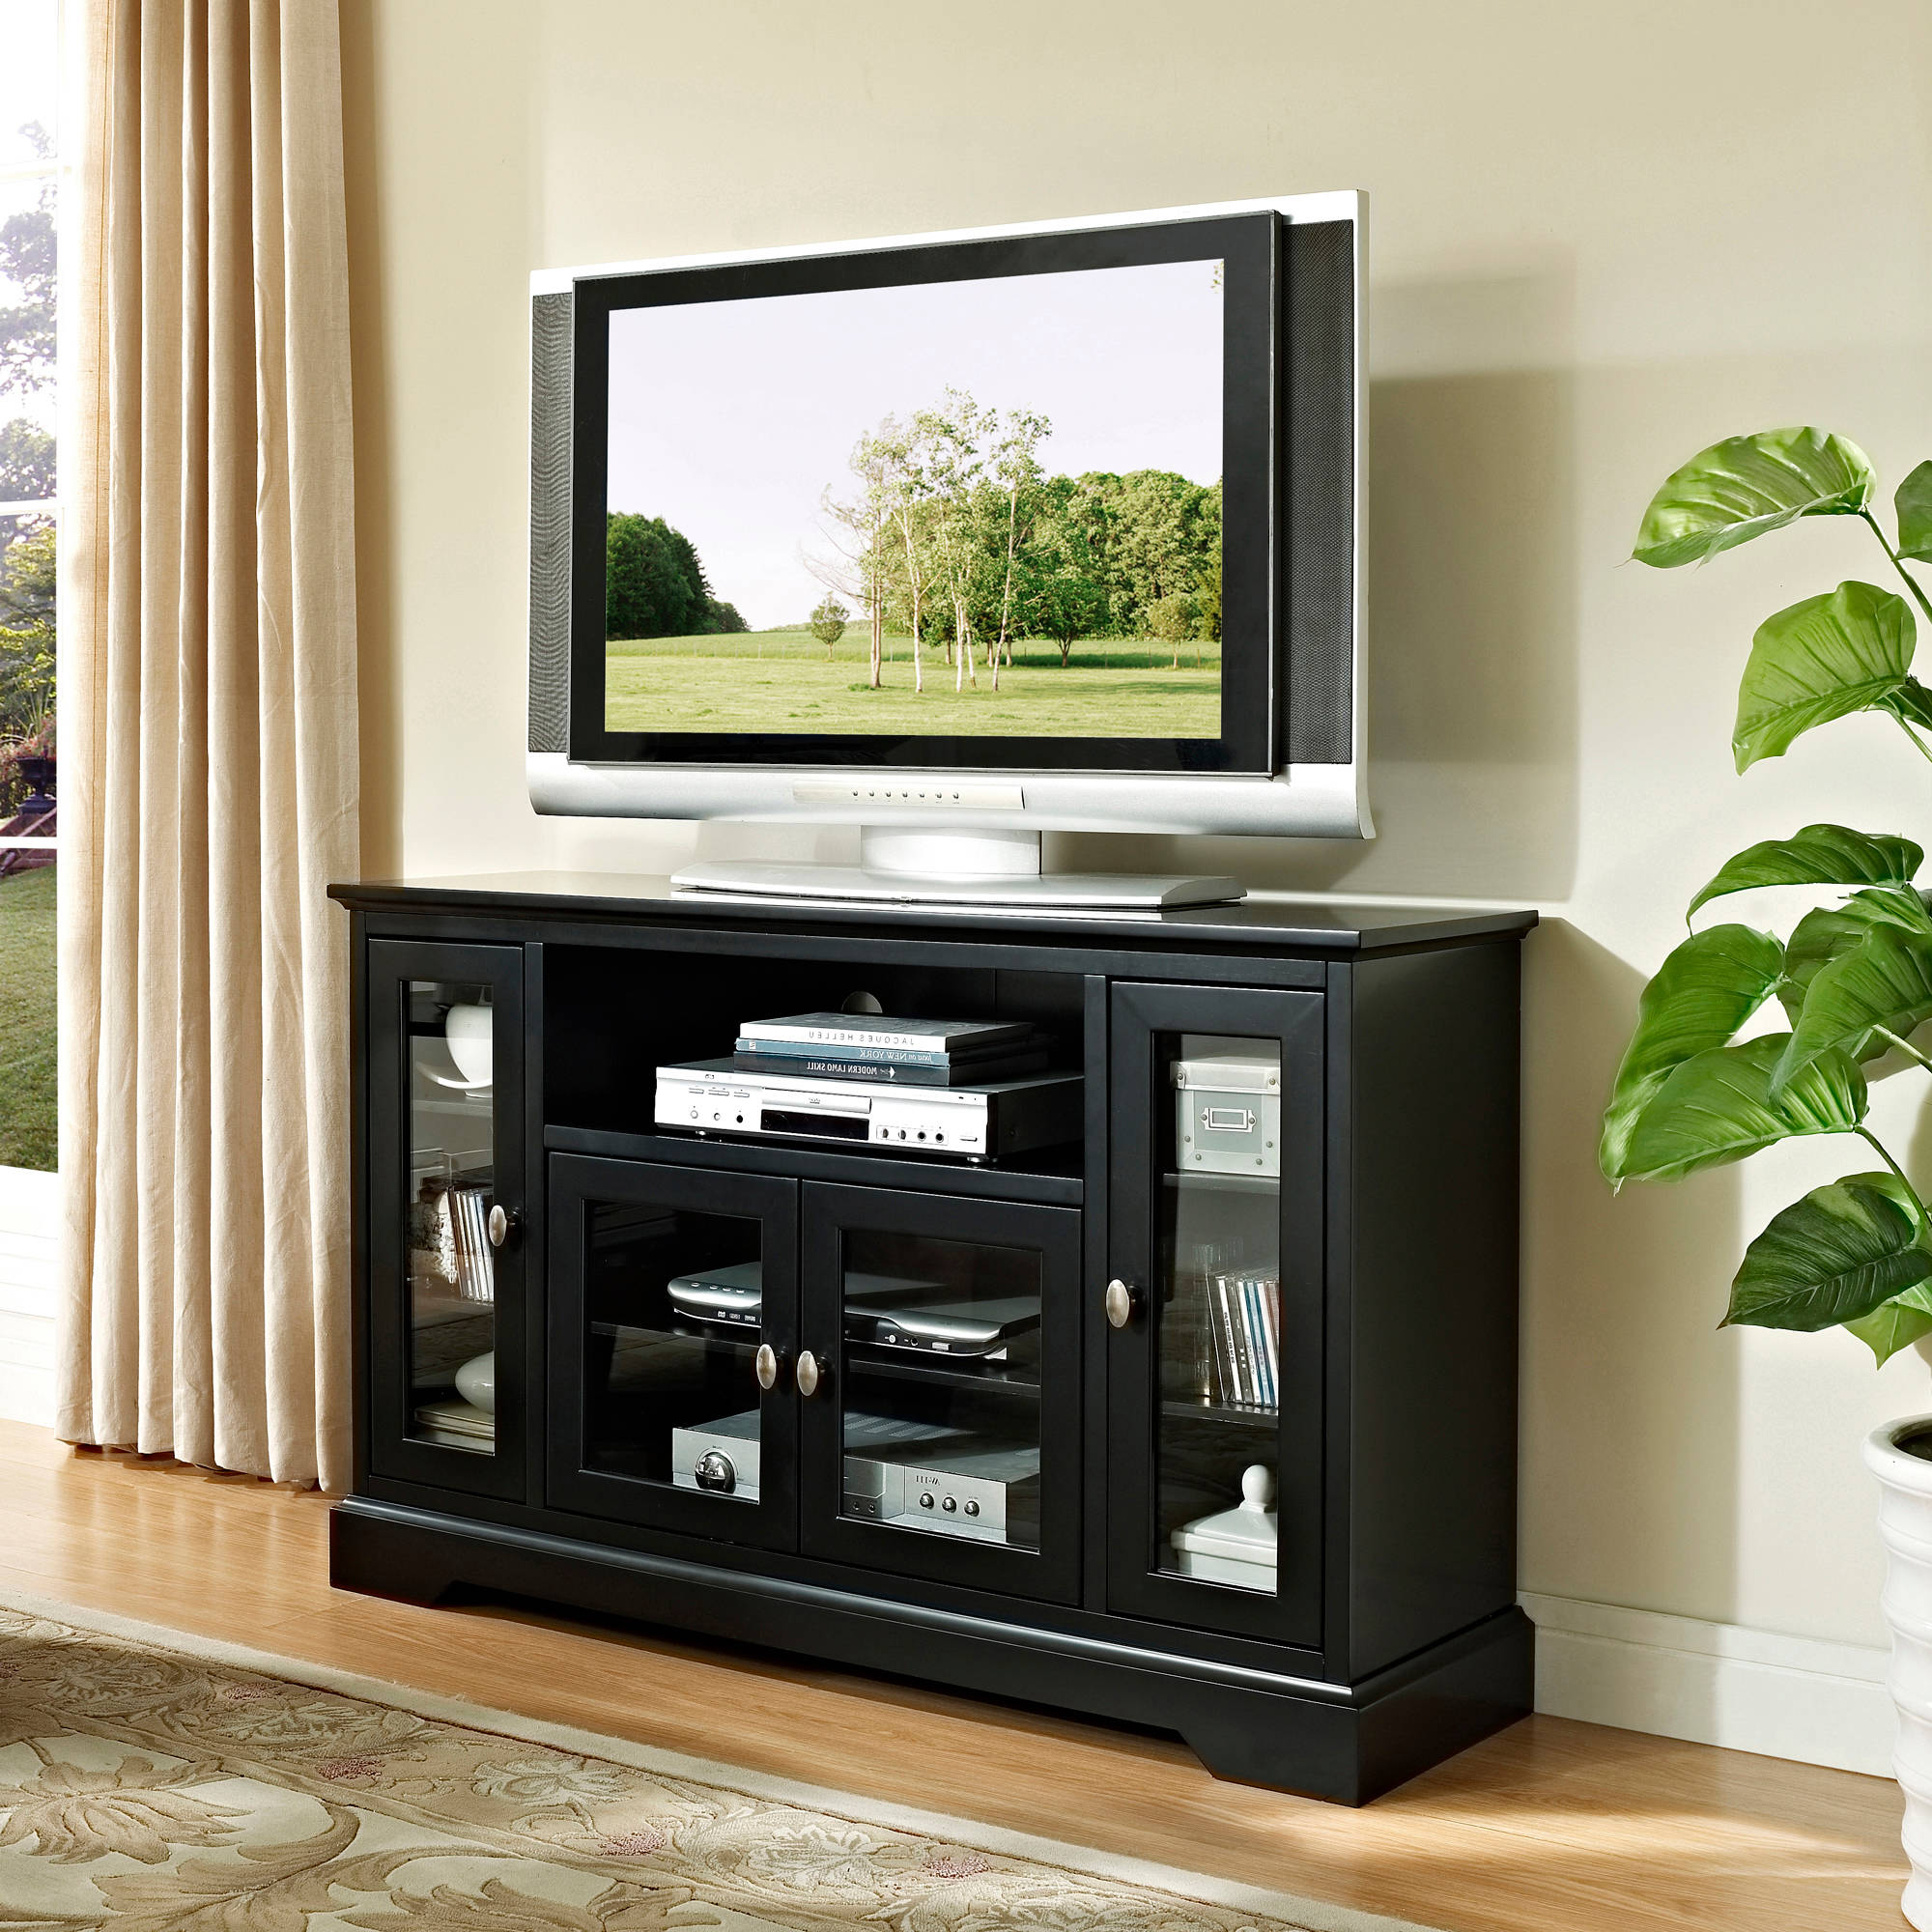 Walker Edison Highboy Style Wood Media Storage Tv Stand Console For With Regard To Famous Dark Wood Tv Stands (View 19 of 20)